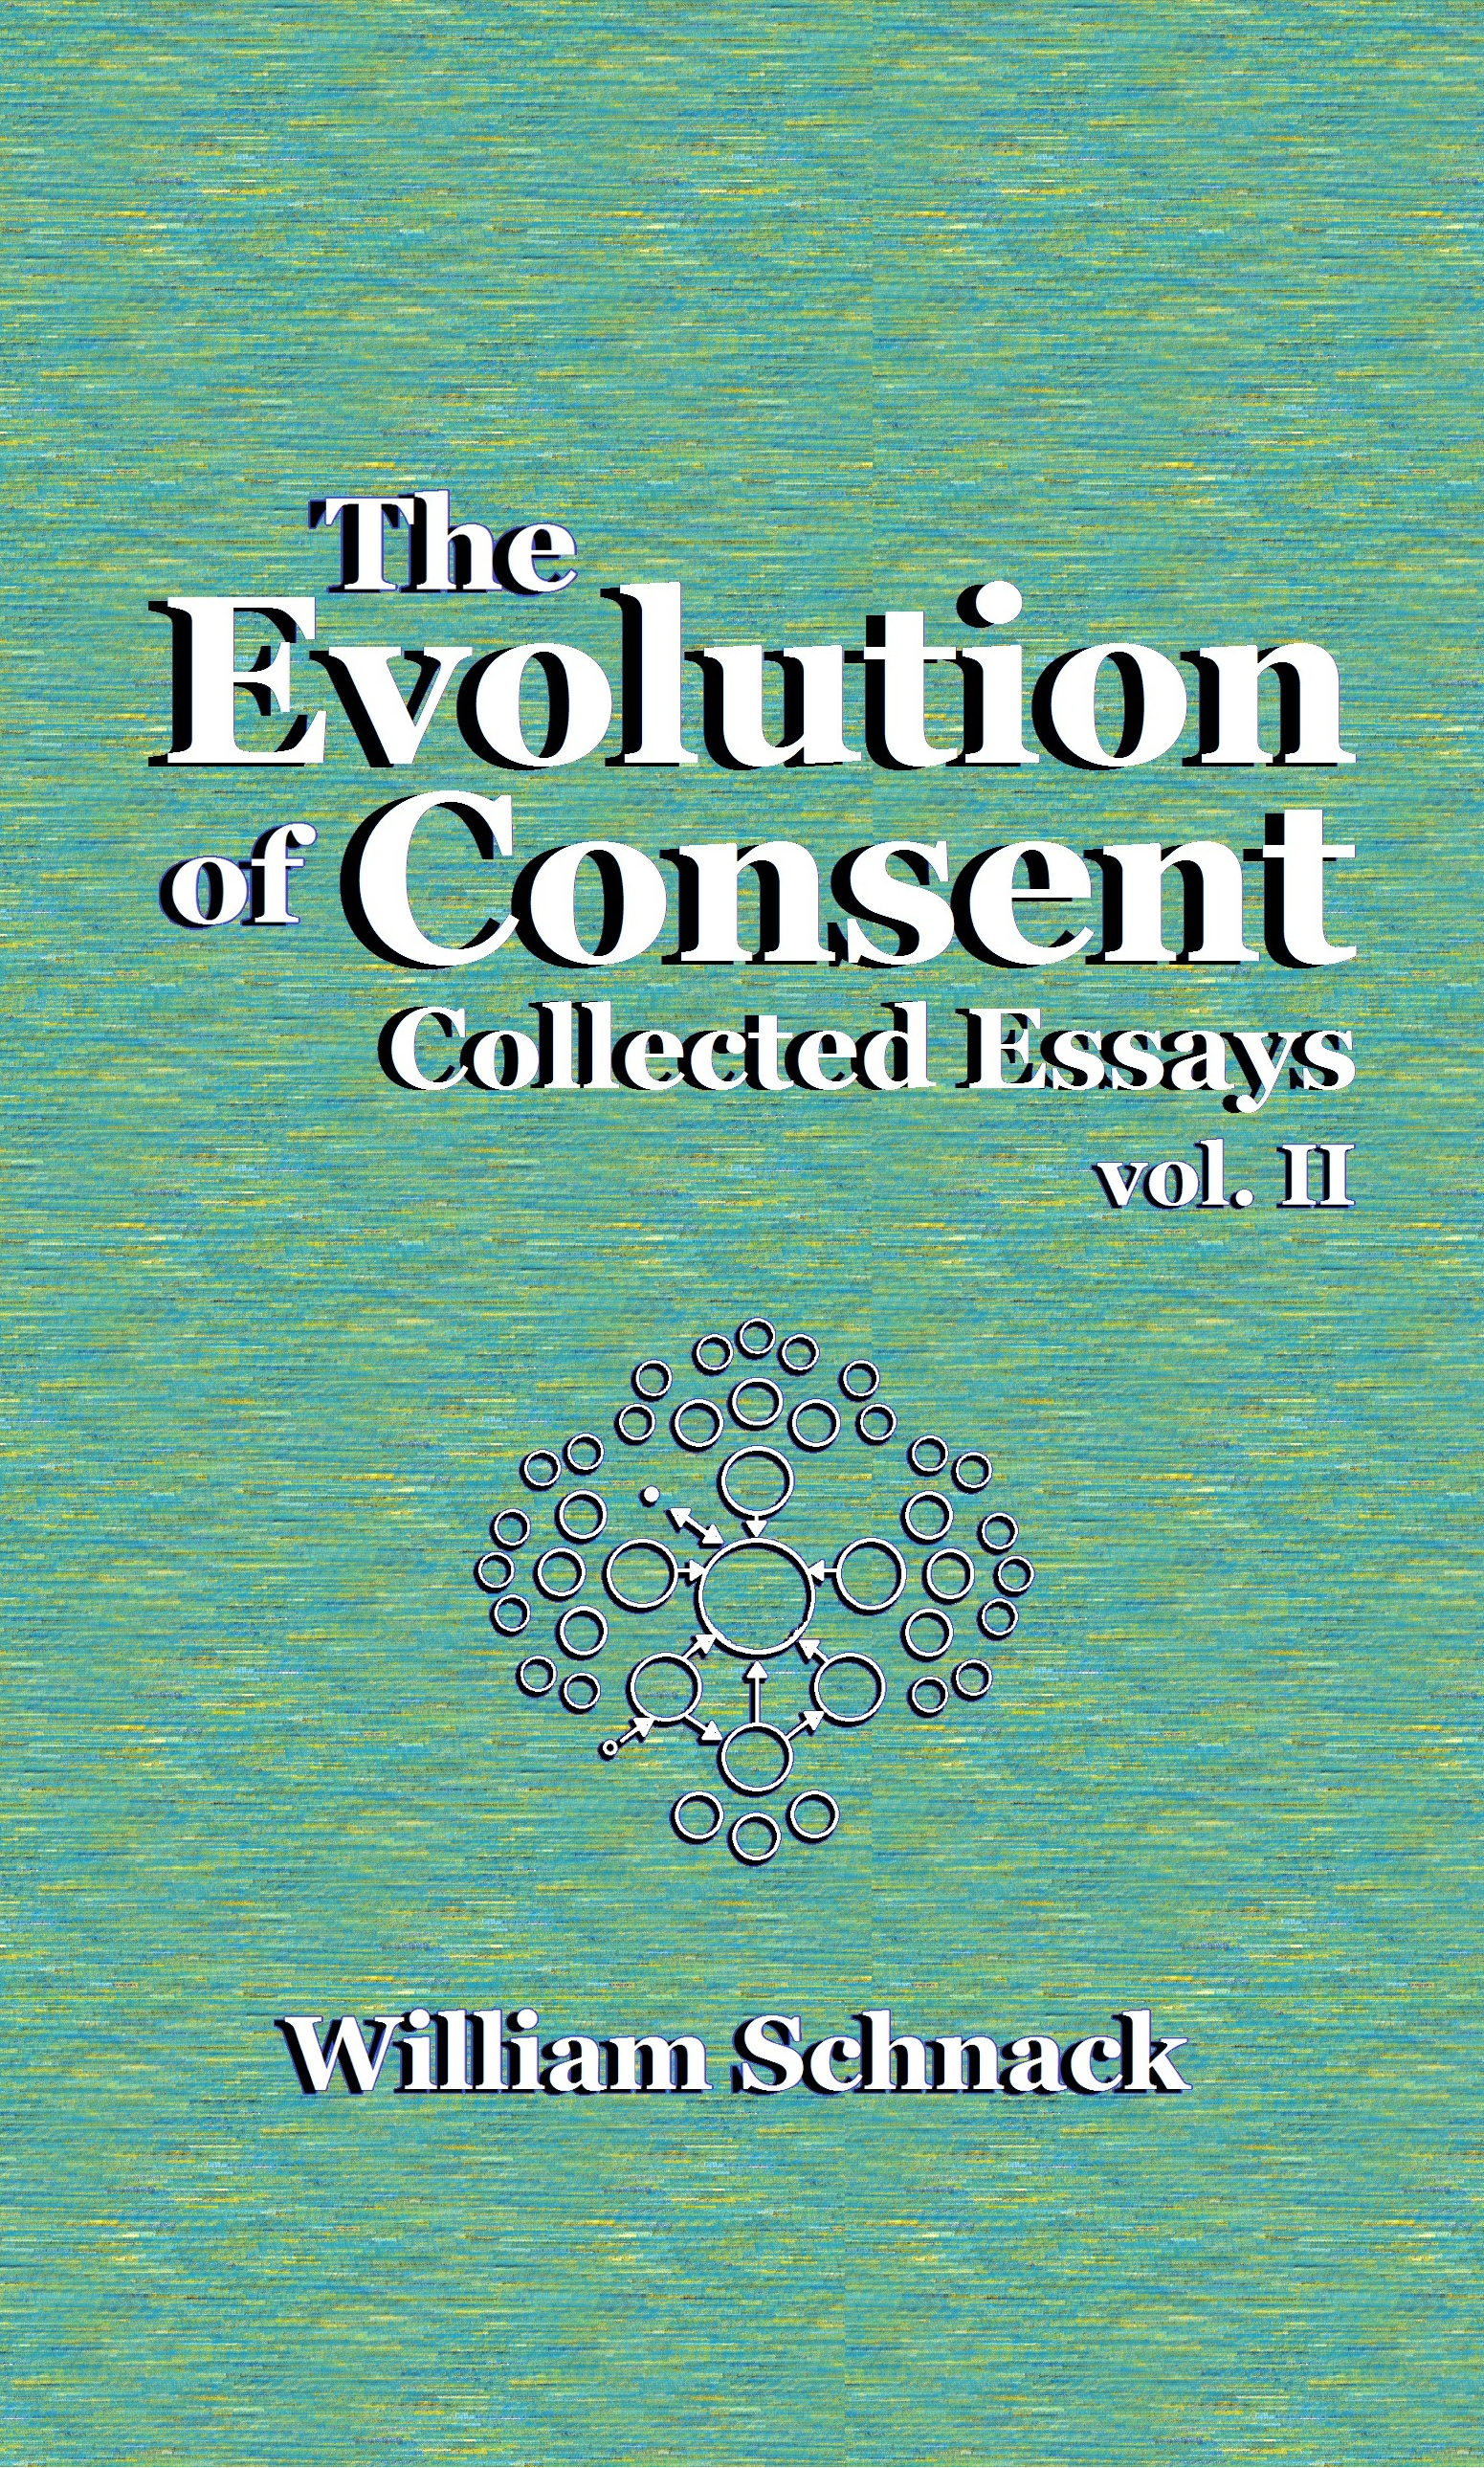 the book com bookcoverformat3333332 volume 2 cover